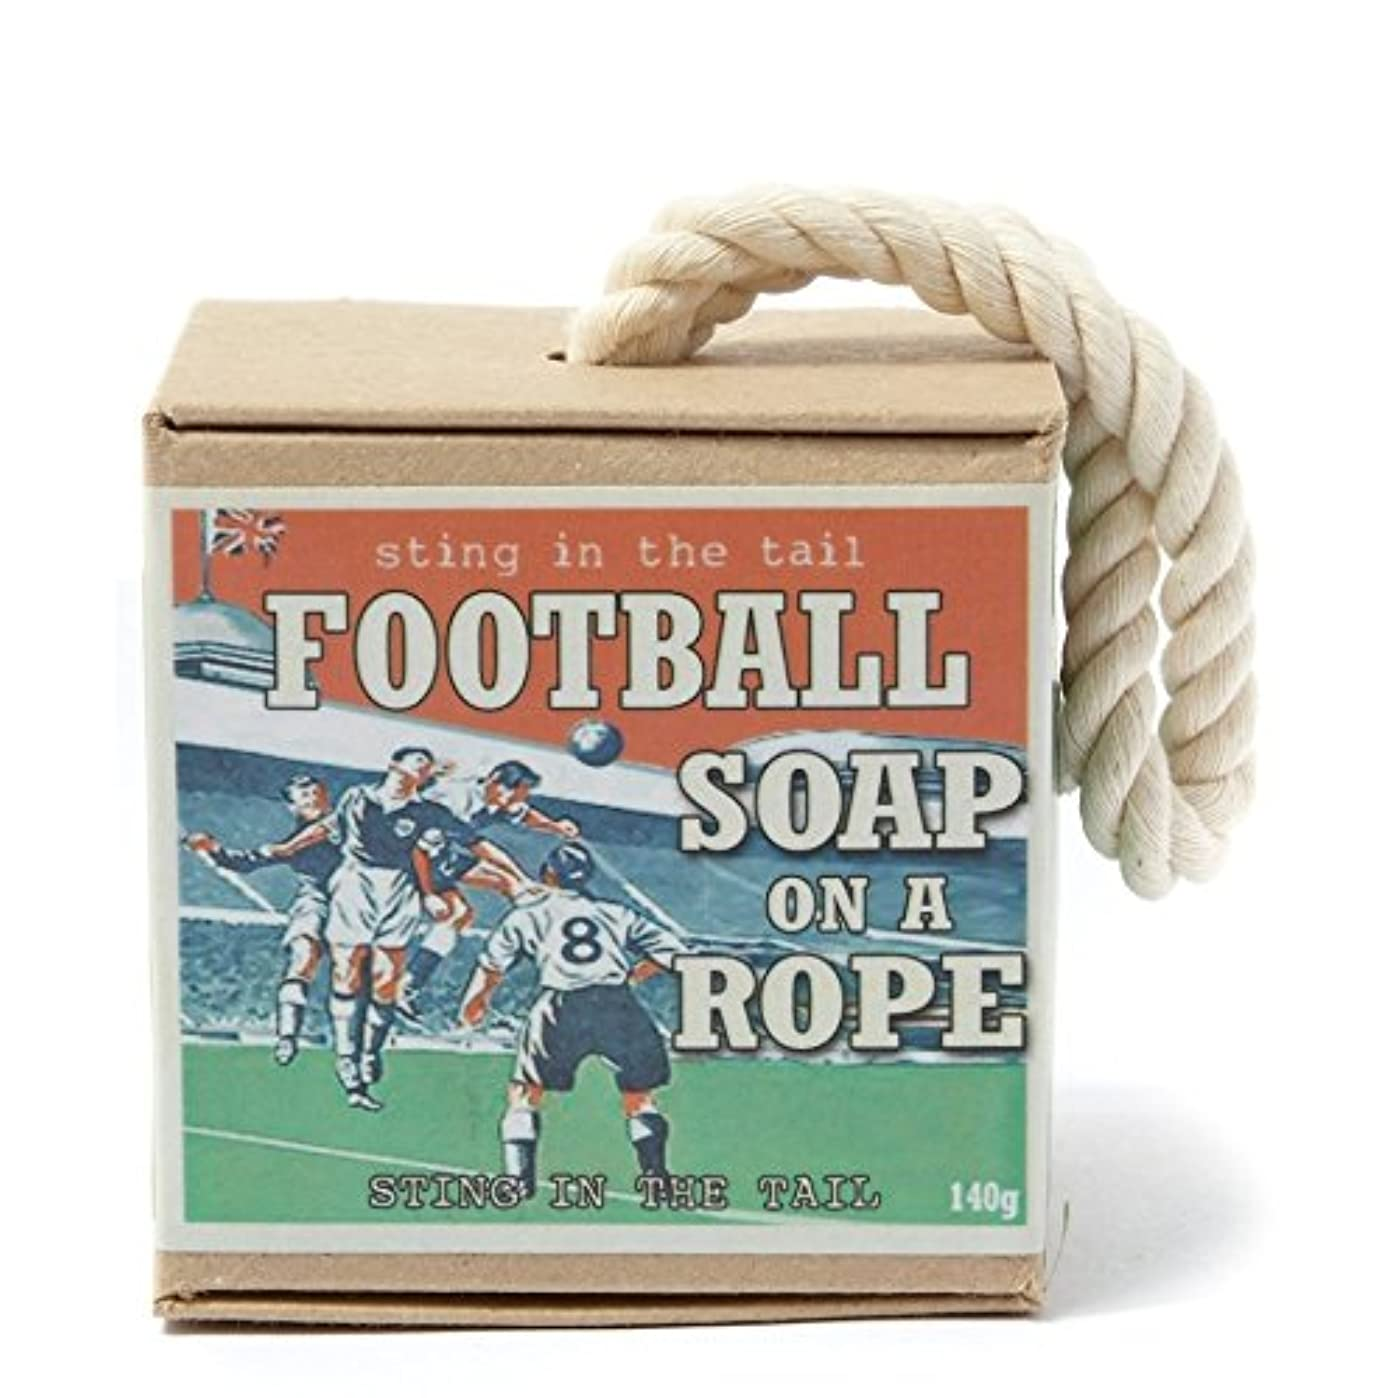 Sting In The Tail Football on a Rope Soap - ロープ石鹸のテールサッカーで刺します [並行輸入品]